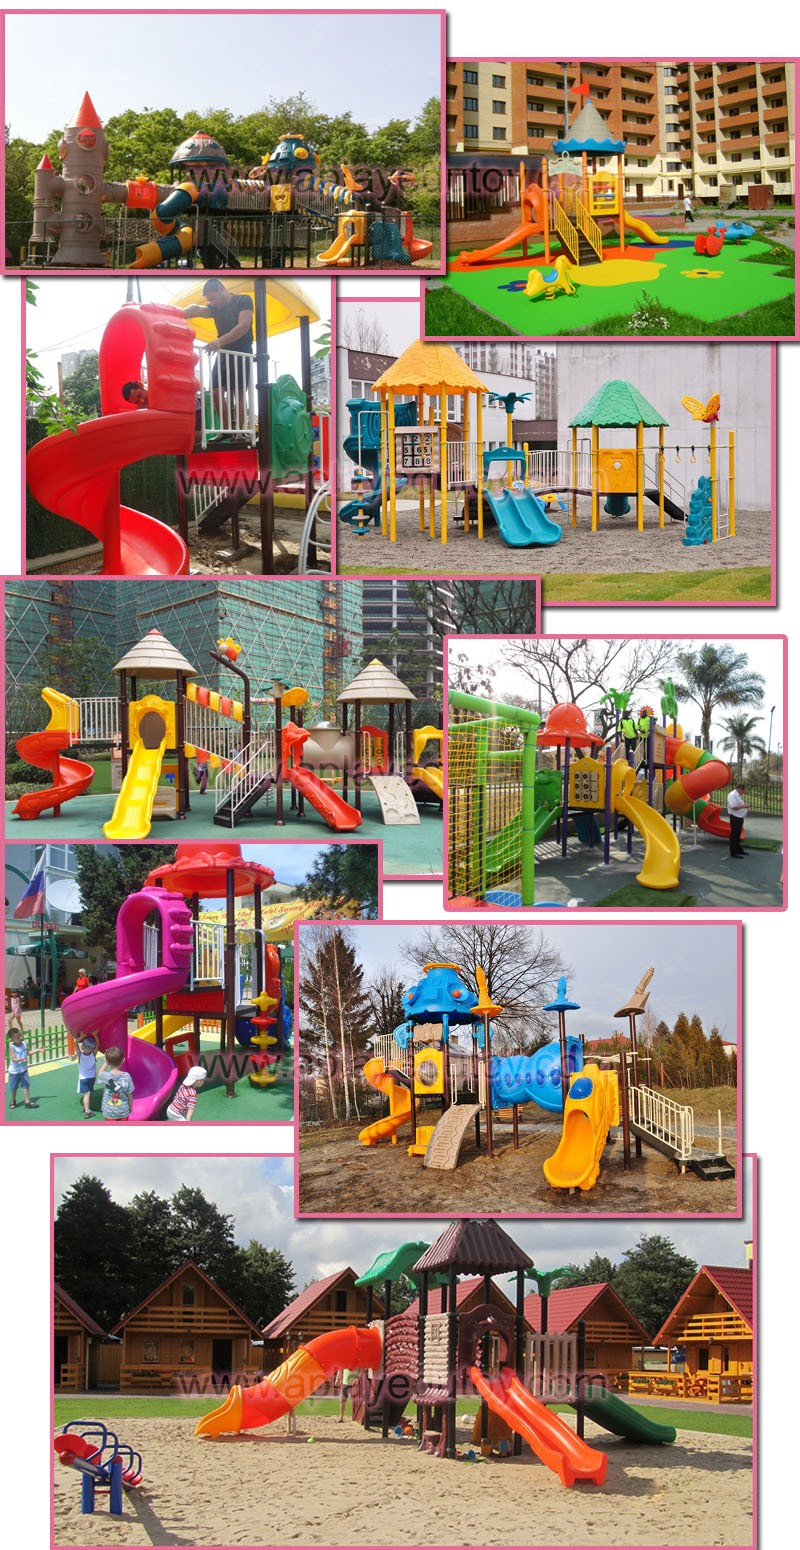 Residential outdoor playground equipment for small school kids outside game slide playing gym structure.jpg